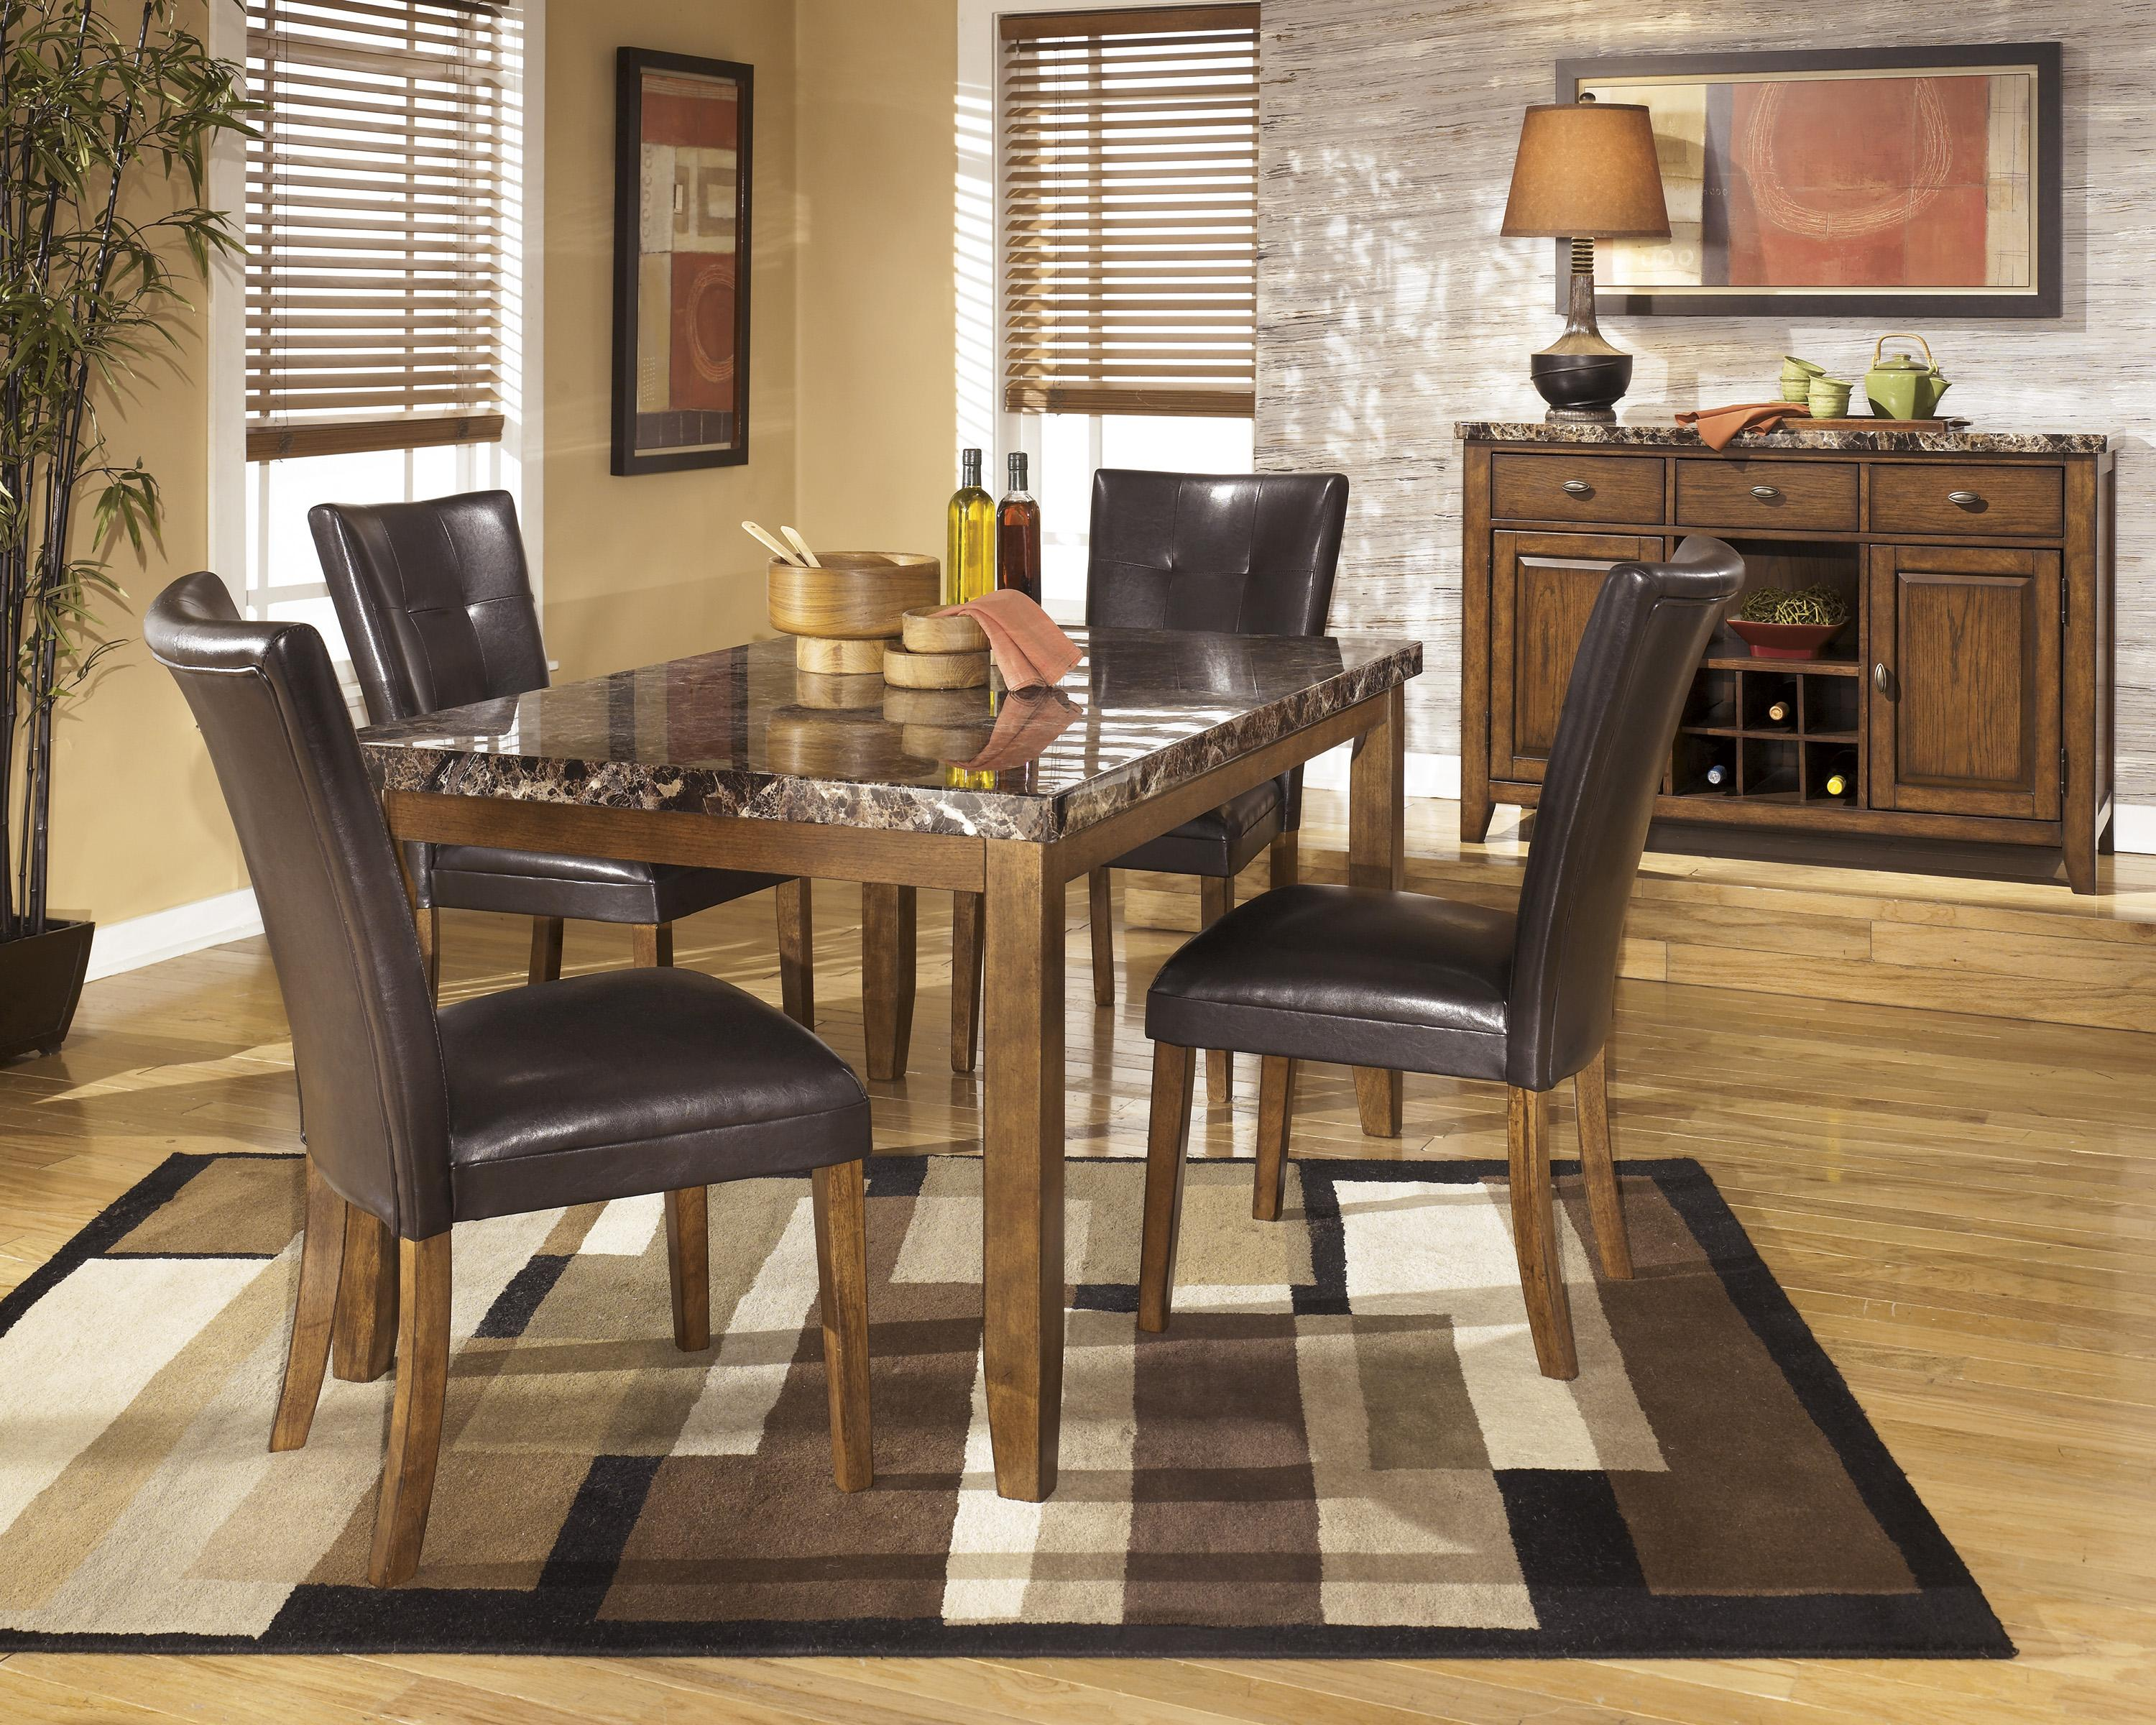 Signature Design by Ashley Lacey Casual Dining Room Group - Item Number: D328 Dining Room Group 1